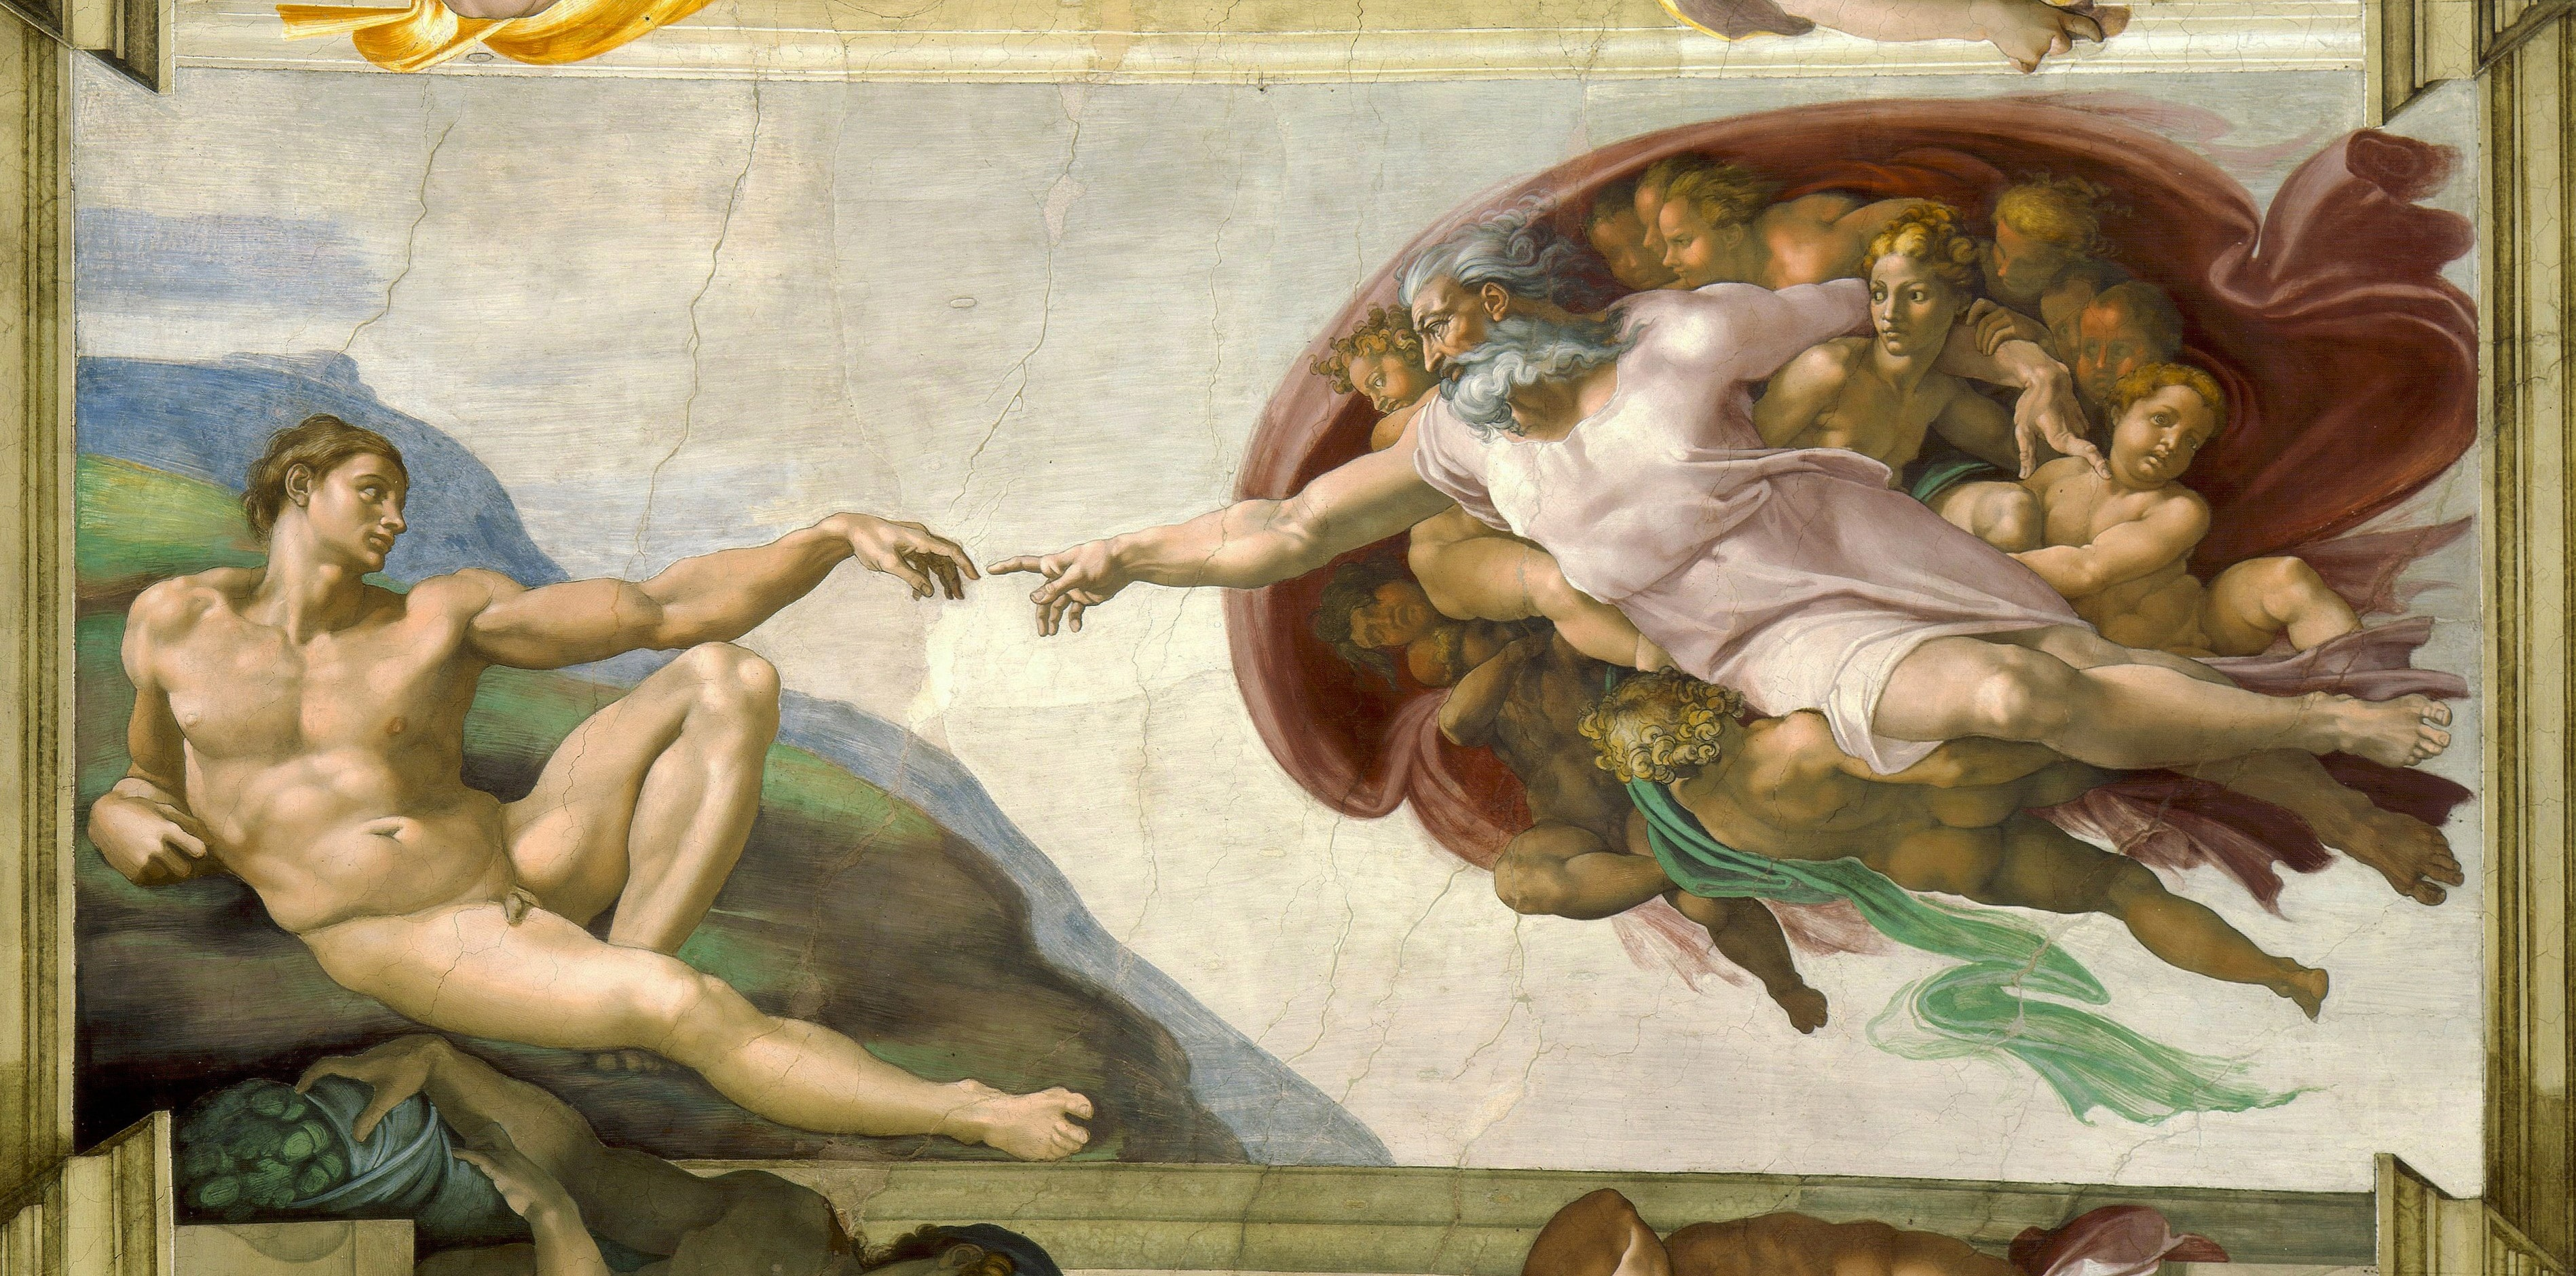 ID: The Creation of Adam is visible in its restored, vibrant colors